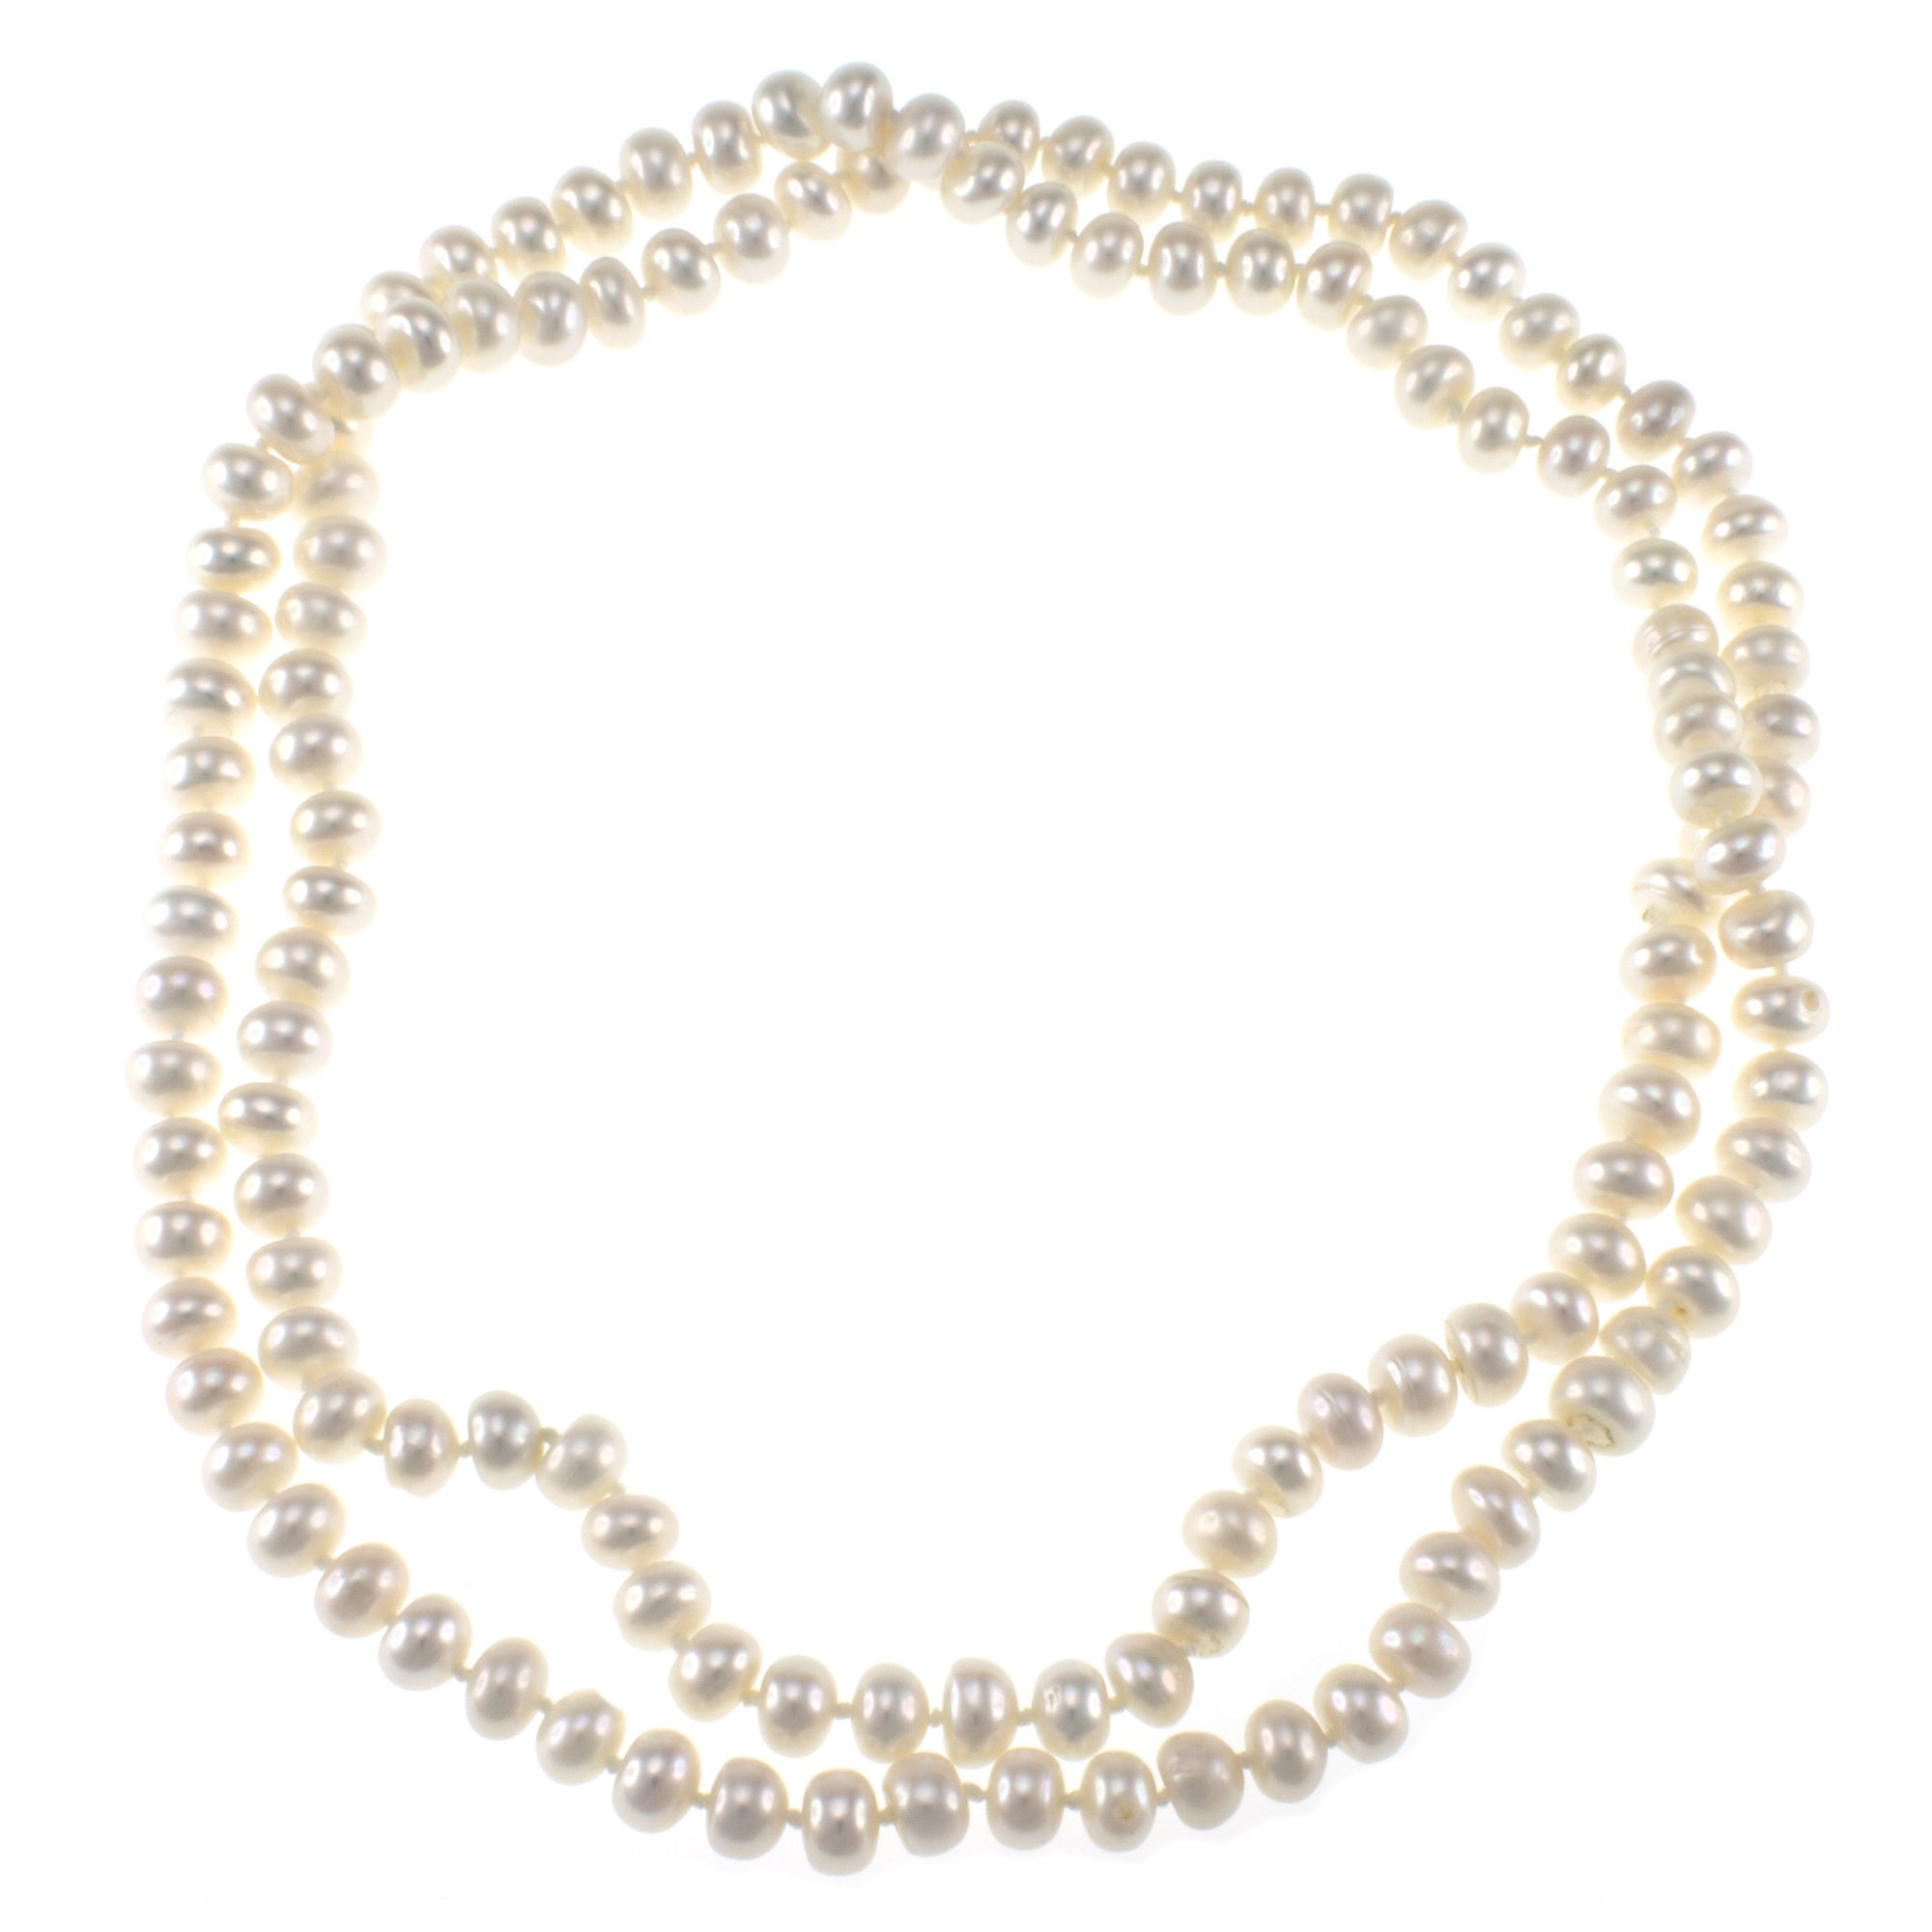 White Freshwater Cultured Pearl Endless Fashion Necklace Jewelry for Women